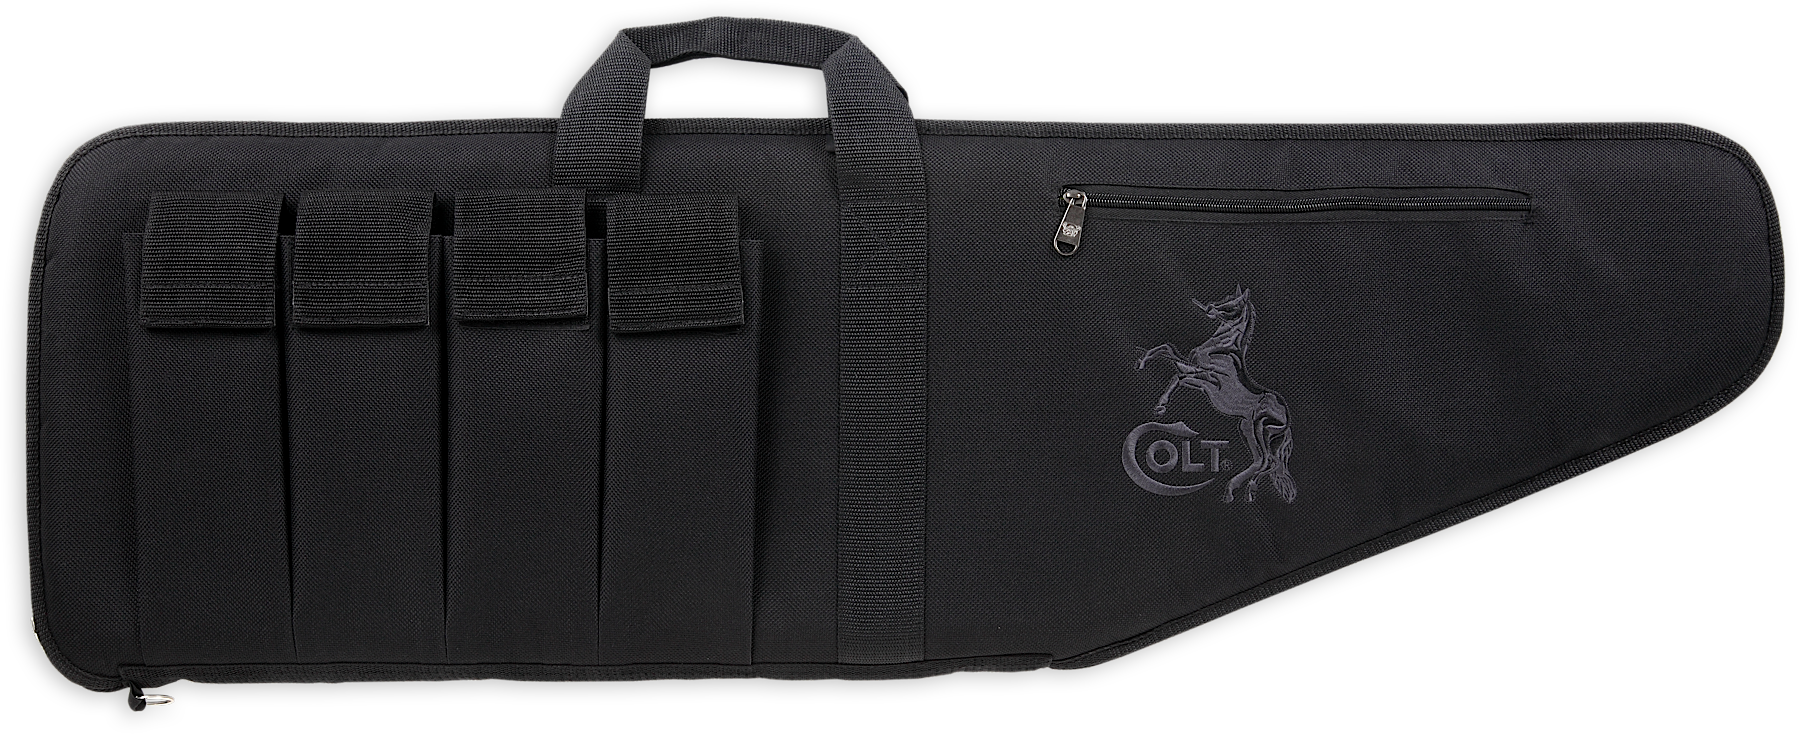 Bulldog CLT1035 Colt MSR Standard Tactical Rifle Case 35